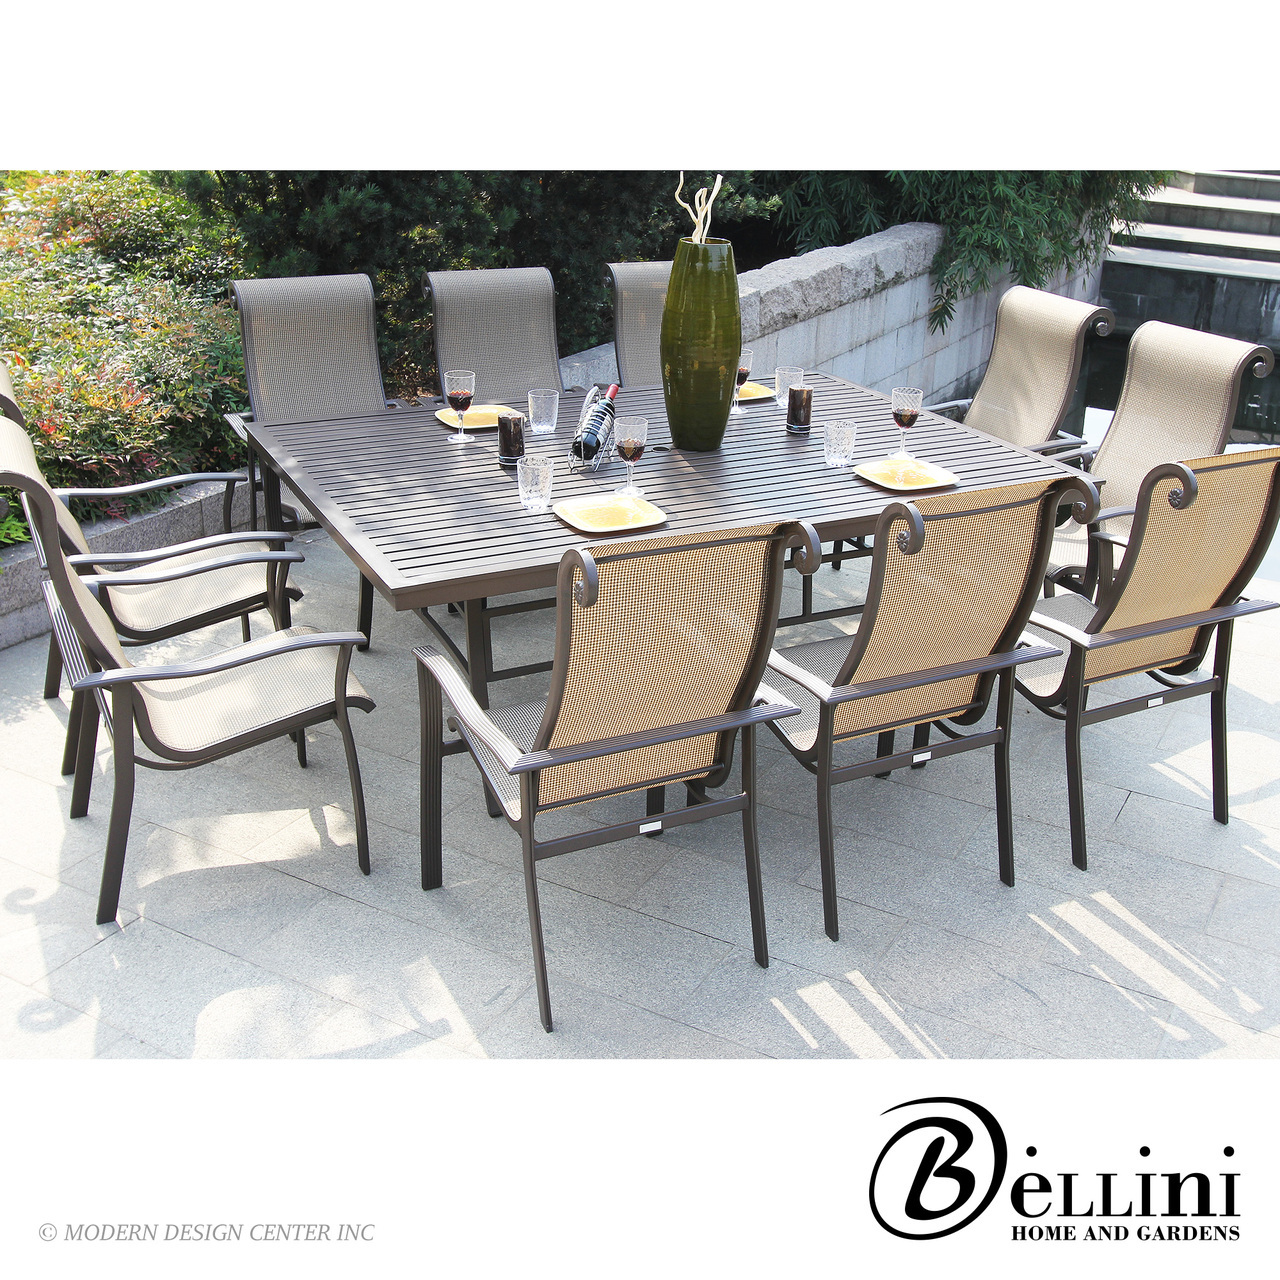 Angrove 11-piece Dining Set A25411 | Bellini